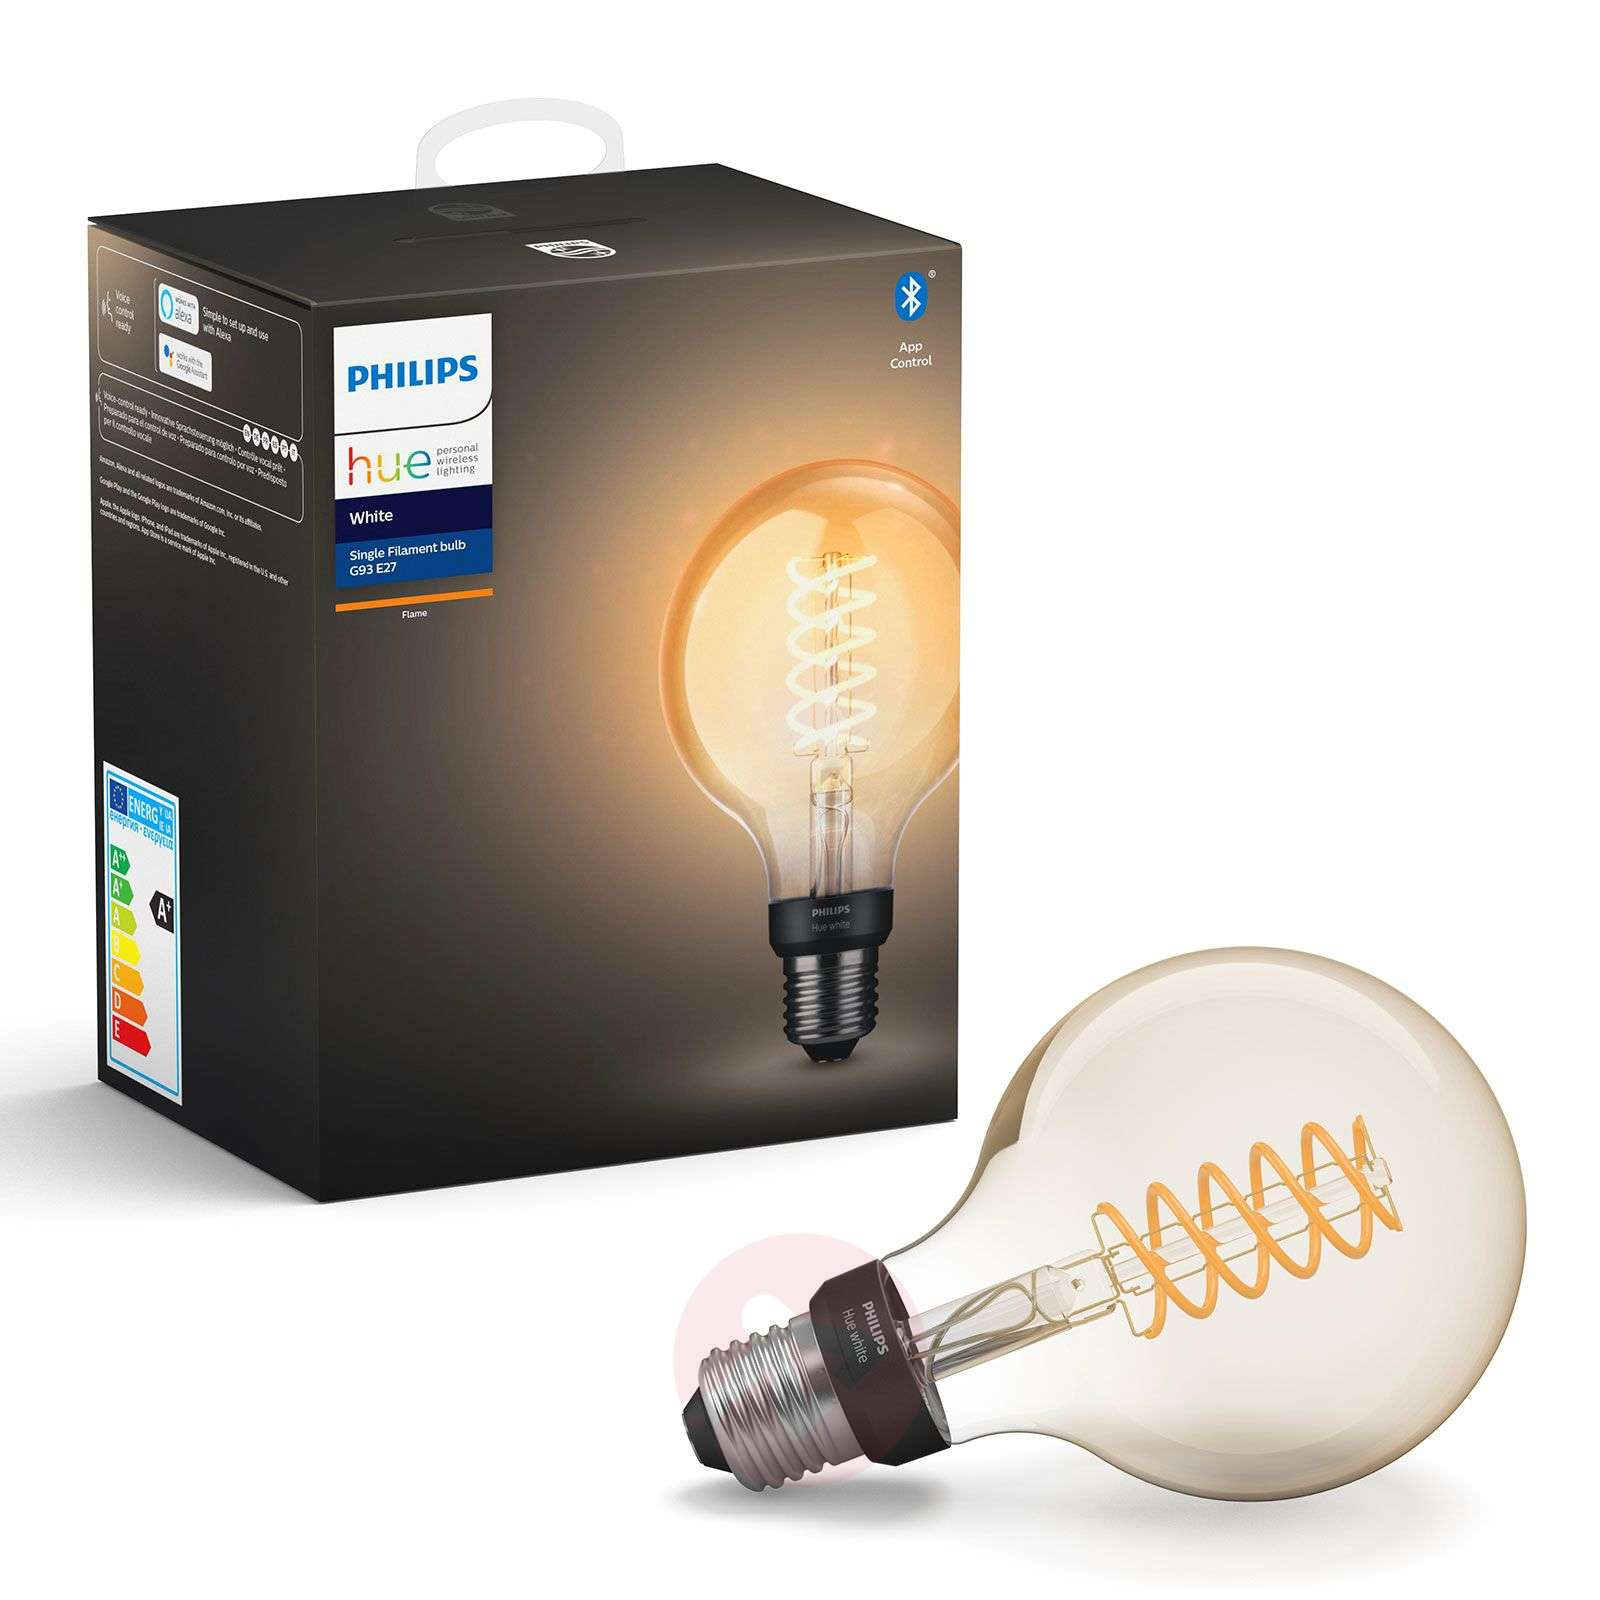 Philips Hue White 7 W E27 filament lamp Globe G95-7534168-01